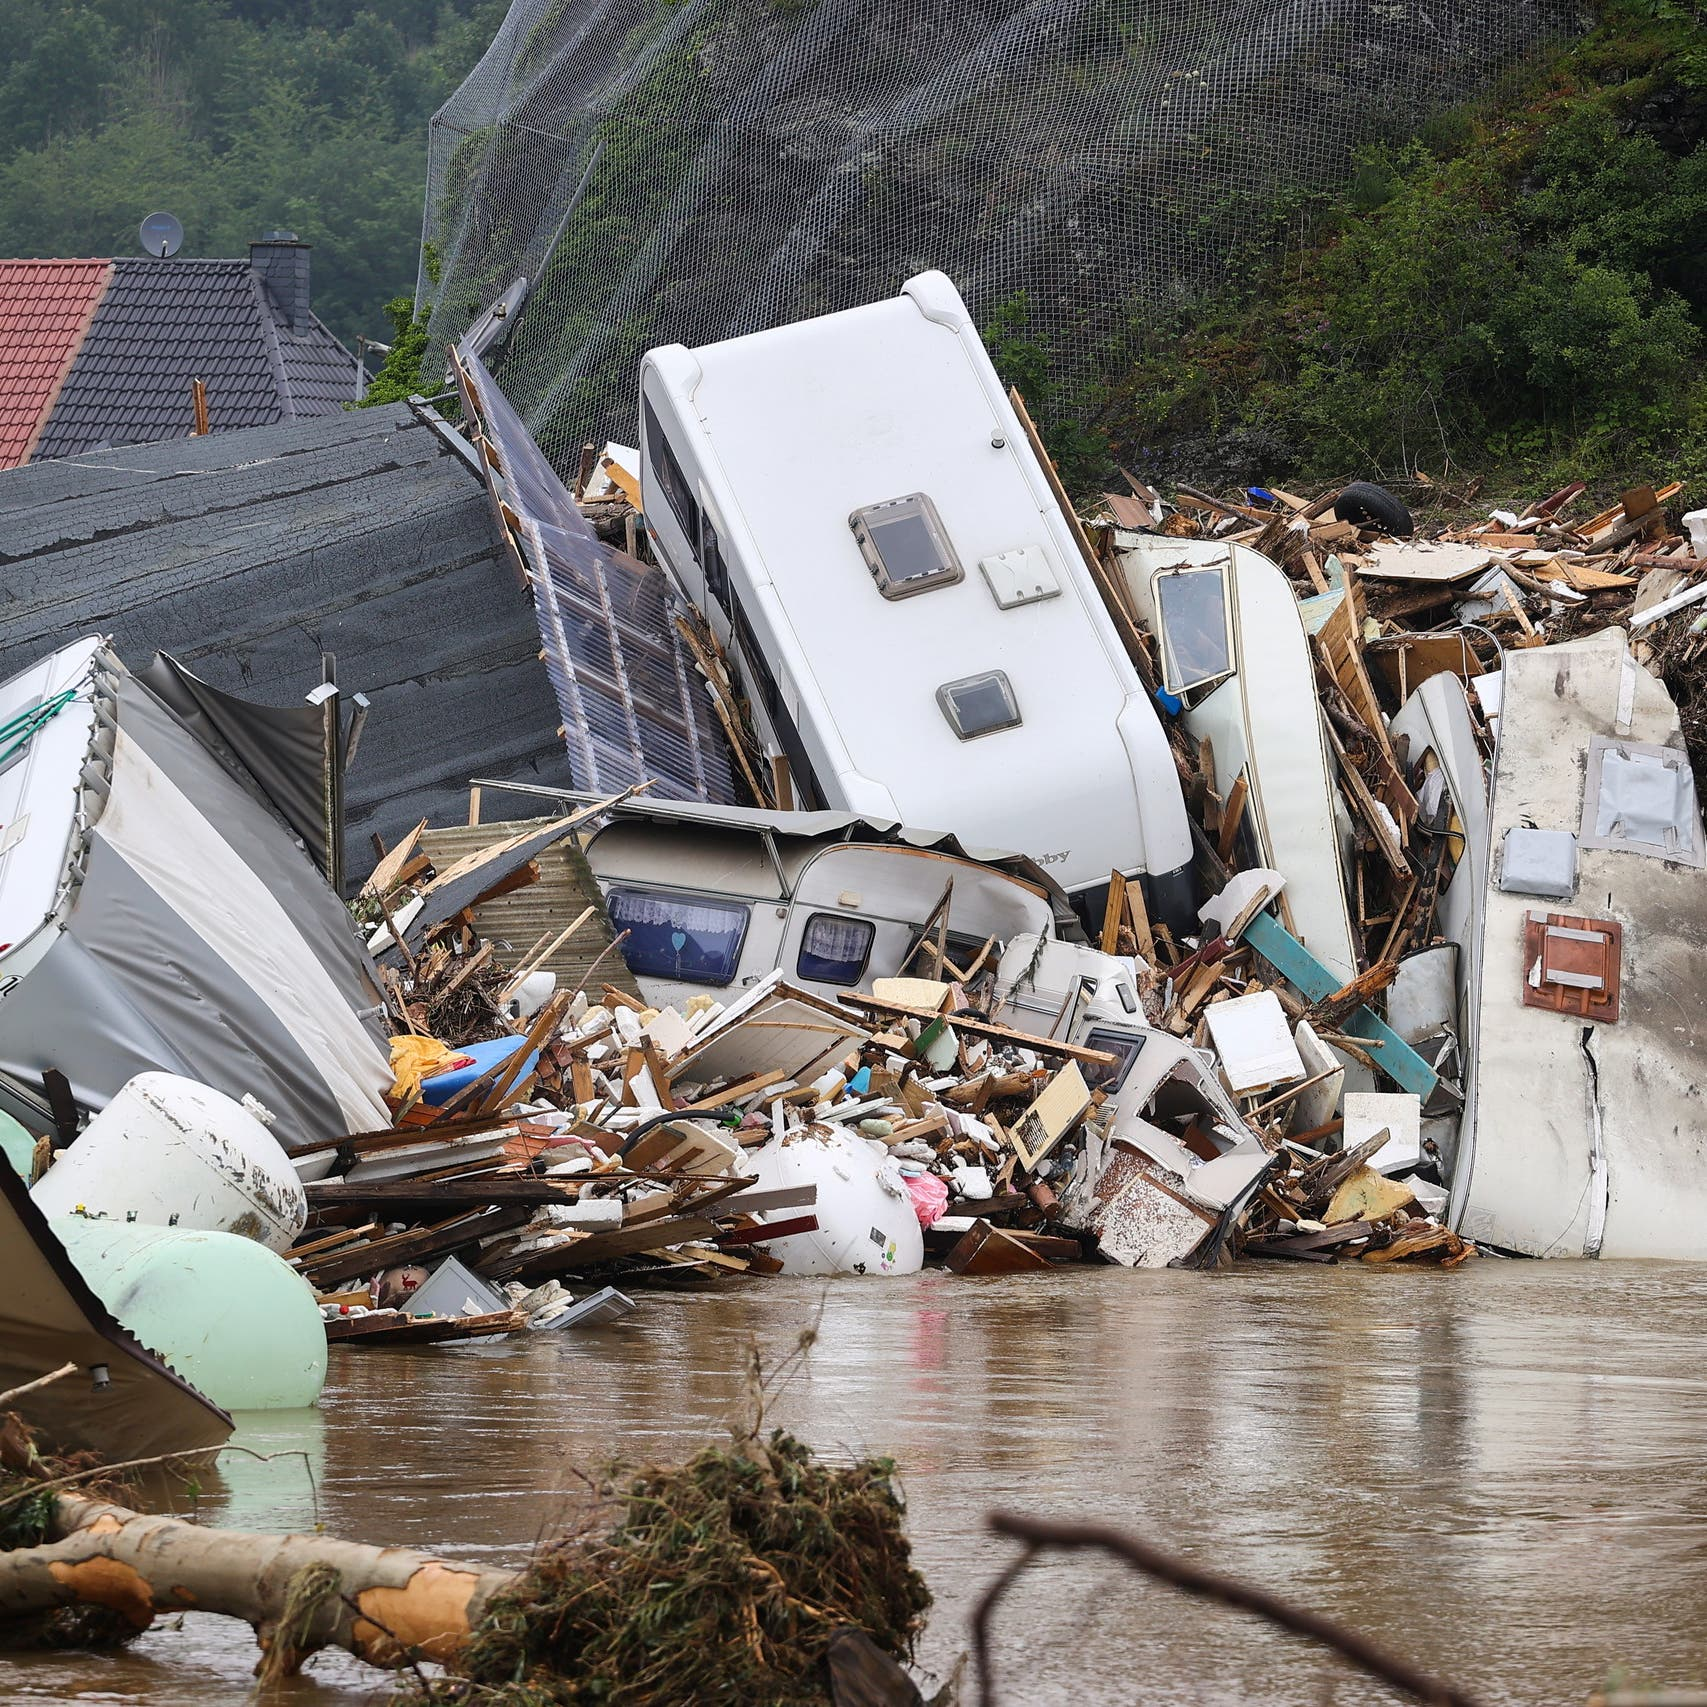 Dutch PM says Europe's deadly floods result of climate change